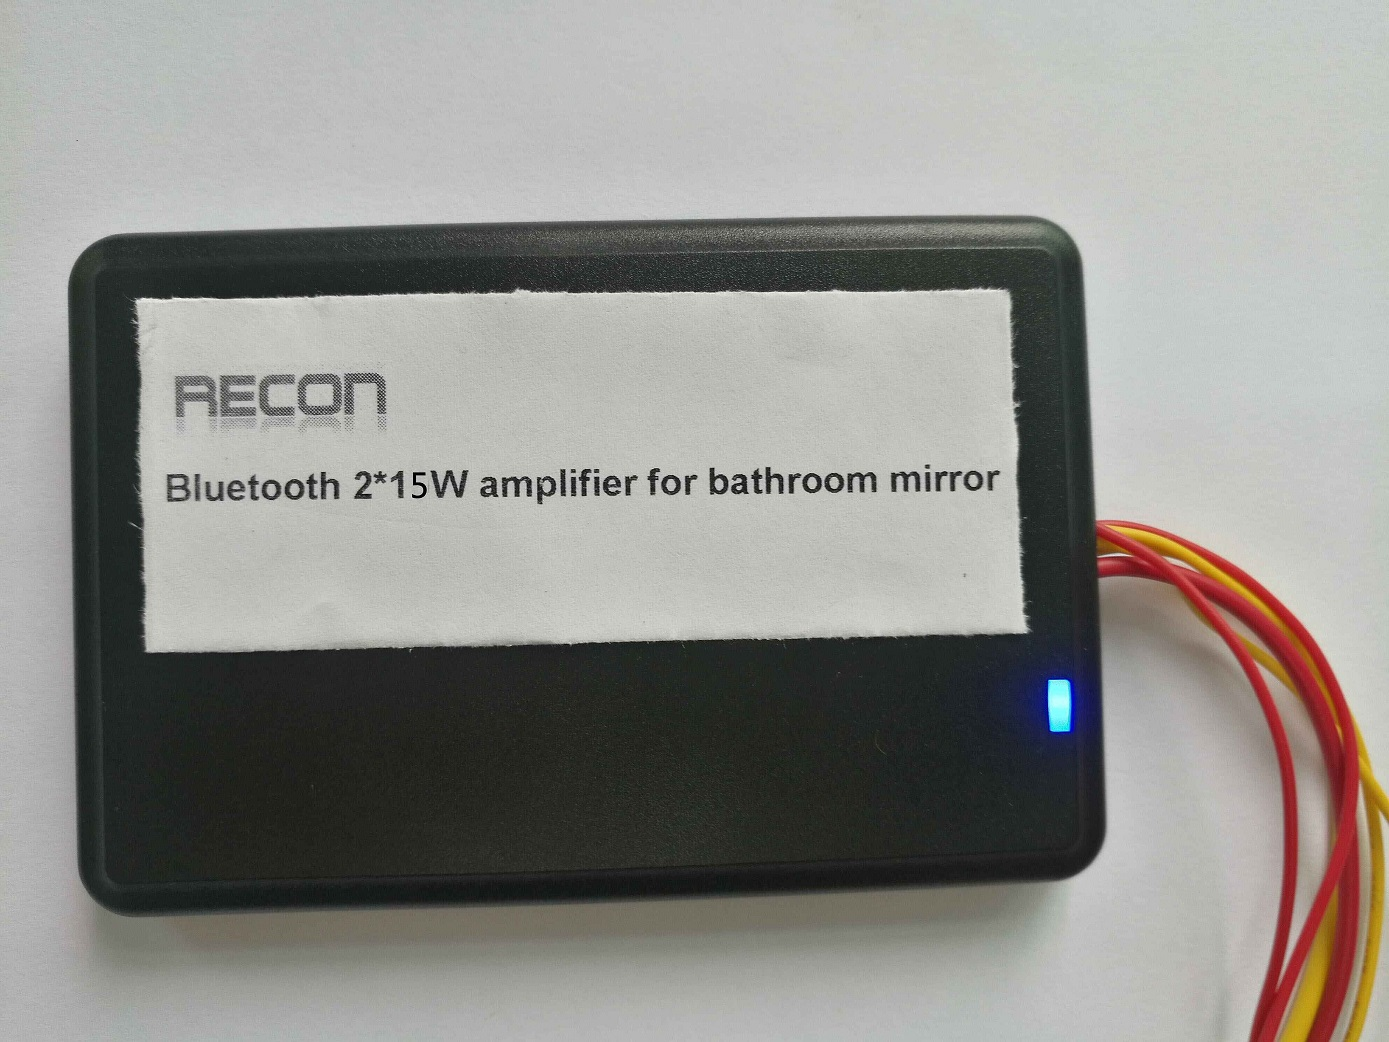 compact bathroom mirror bluetooth amplifier